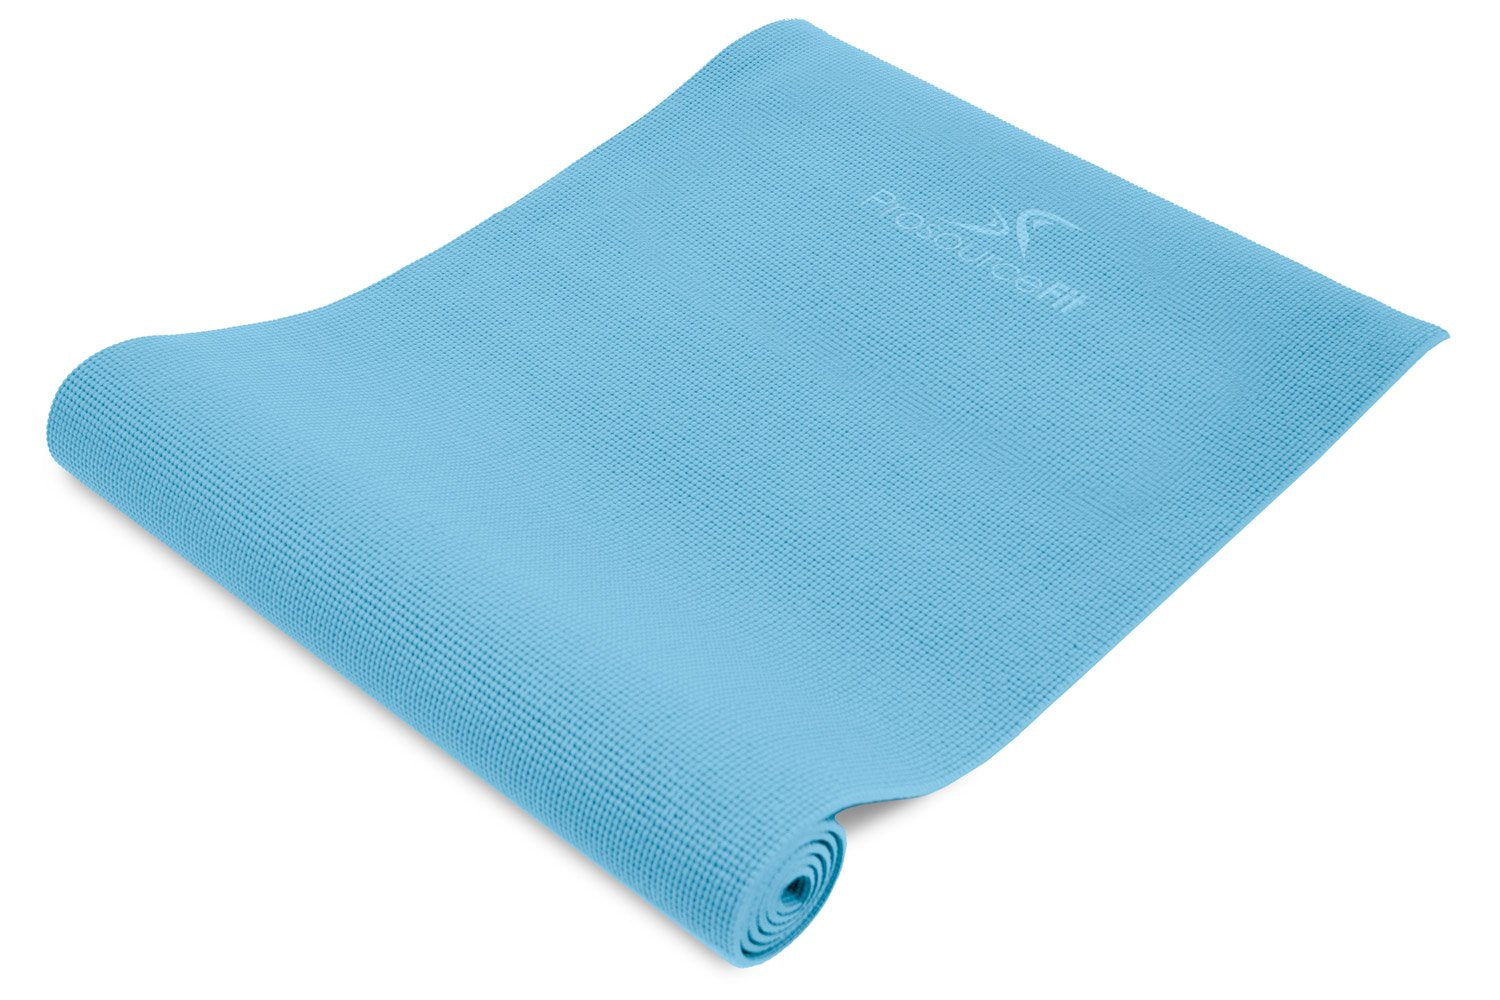 Aqua Original Yoga Mat 1/4""